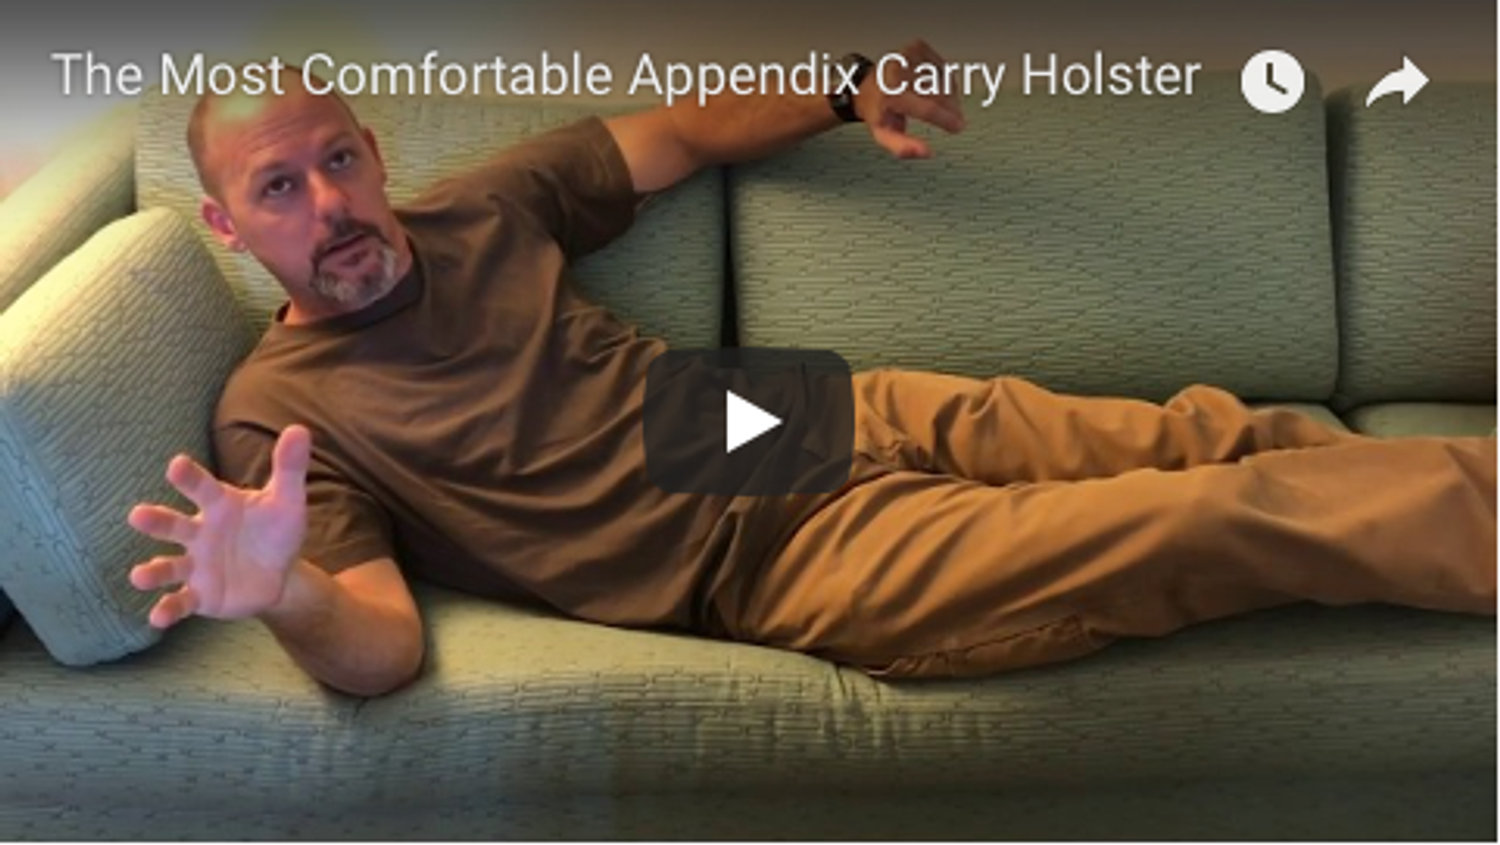 The Most Comfortable Appendix Carry Holster